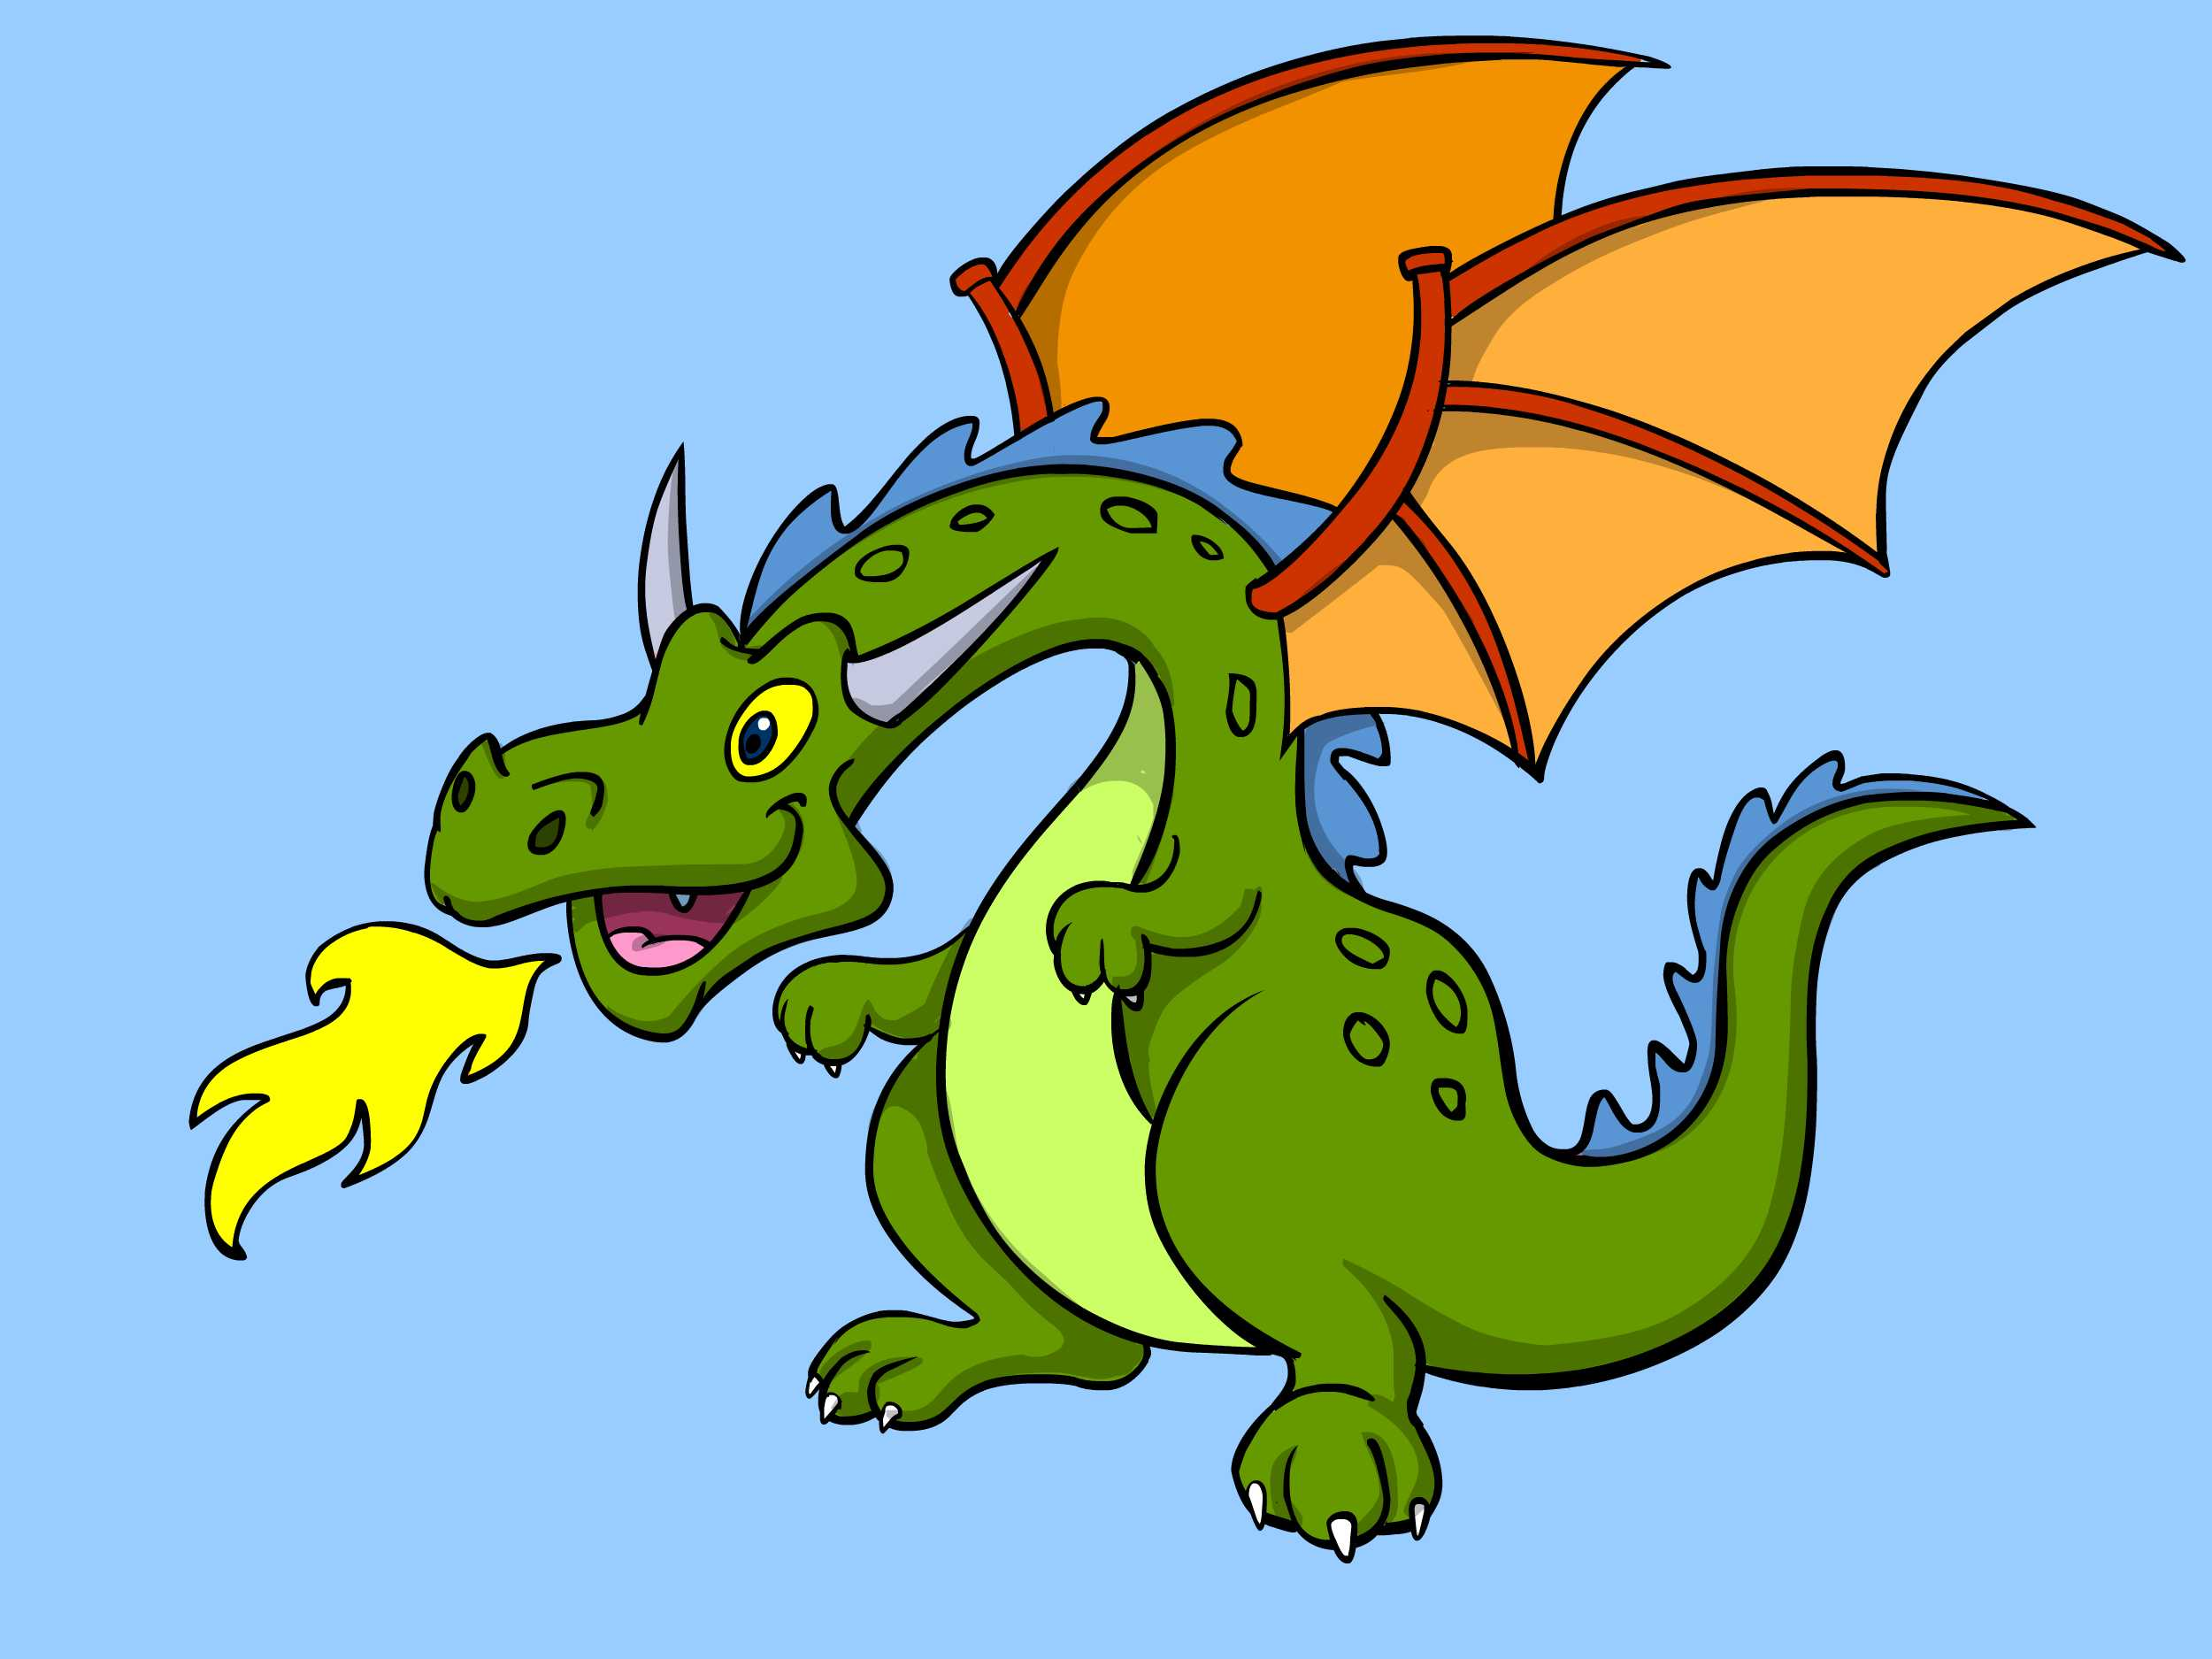 2500x1875 Inspiring Image Of A Dragon The 4 Best Ways To Draw Wikihow